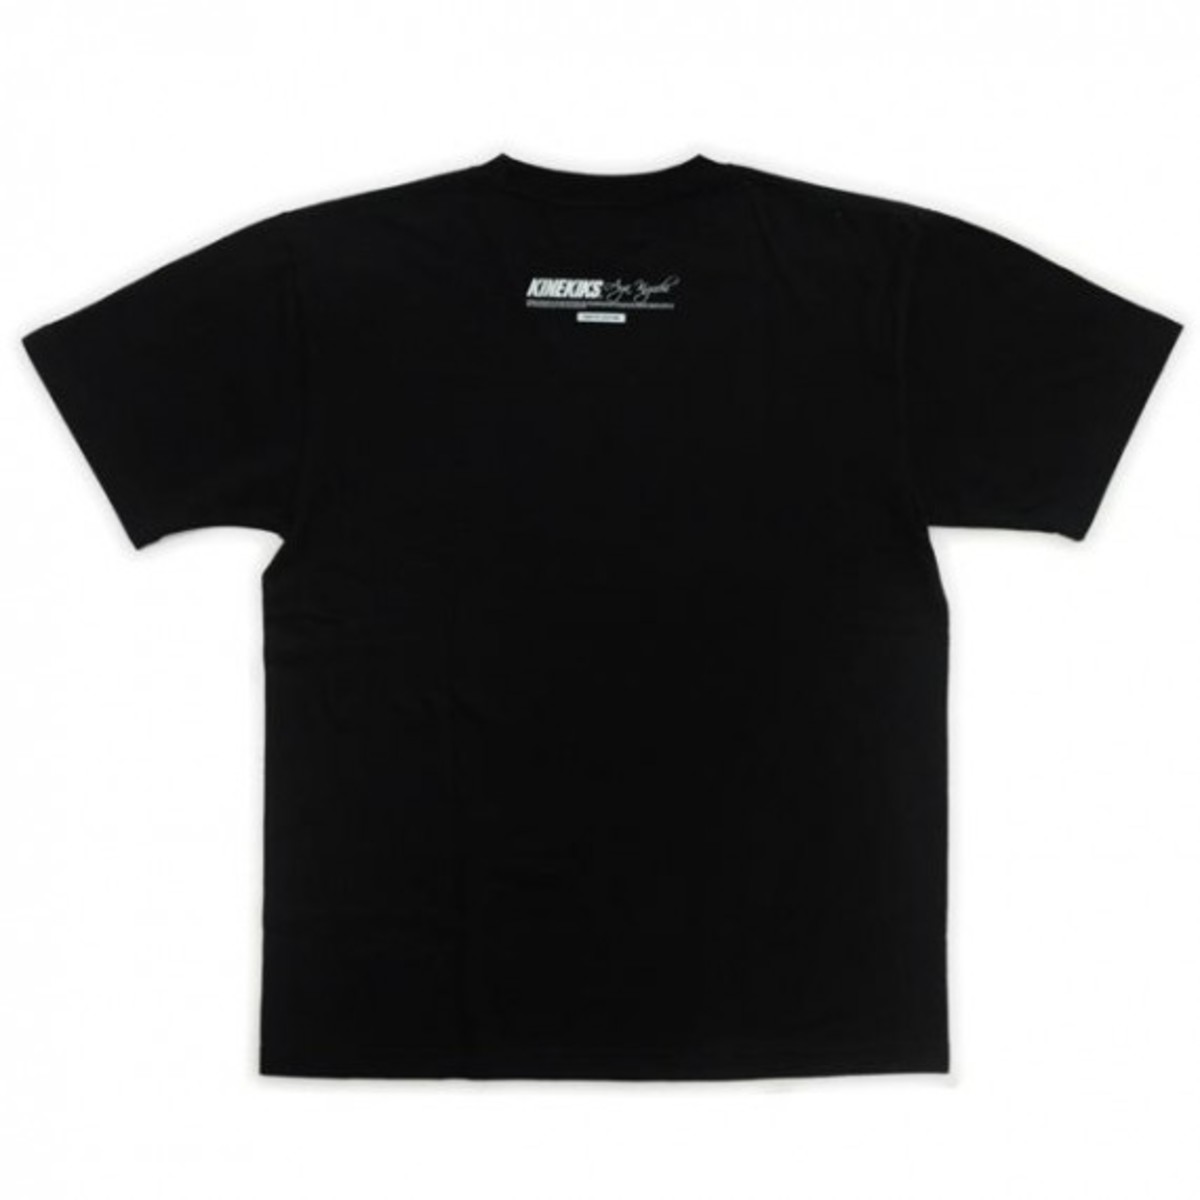 Year of the Bunny T-Shirt Black 2